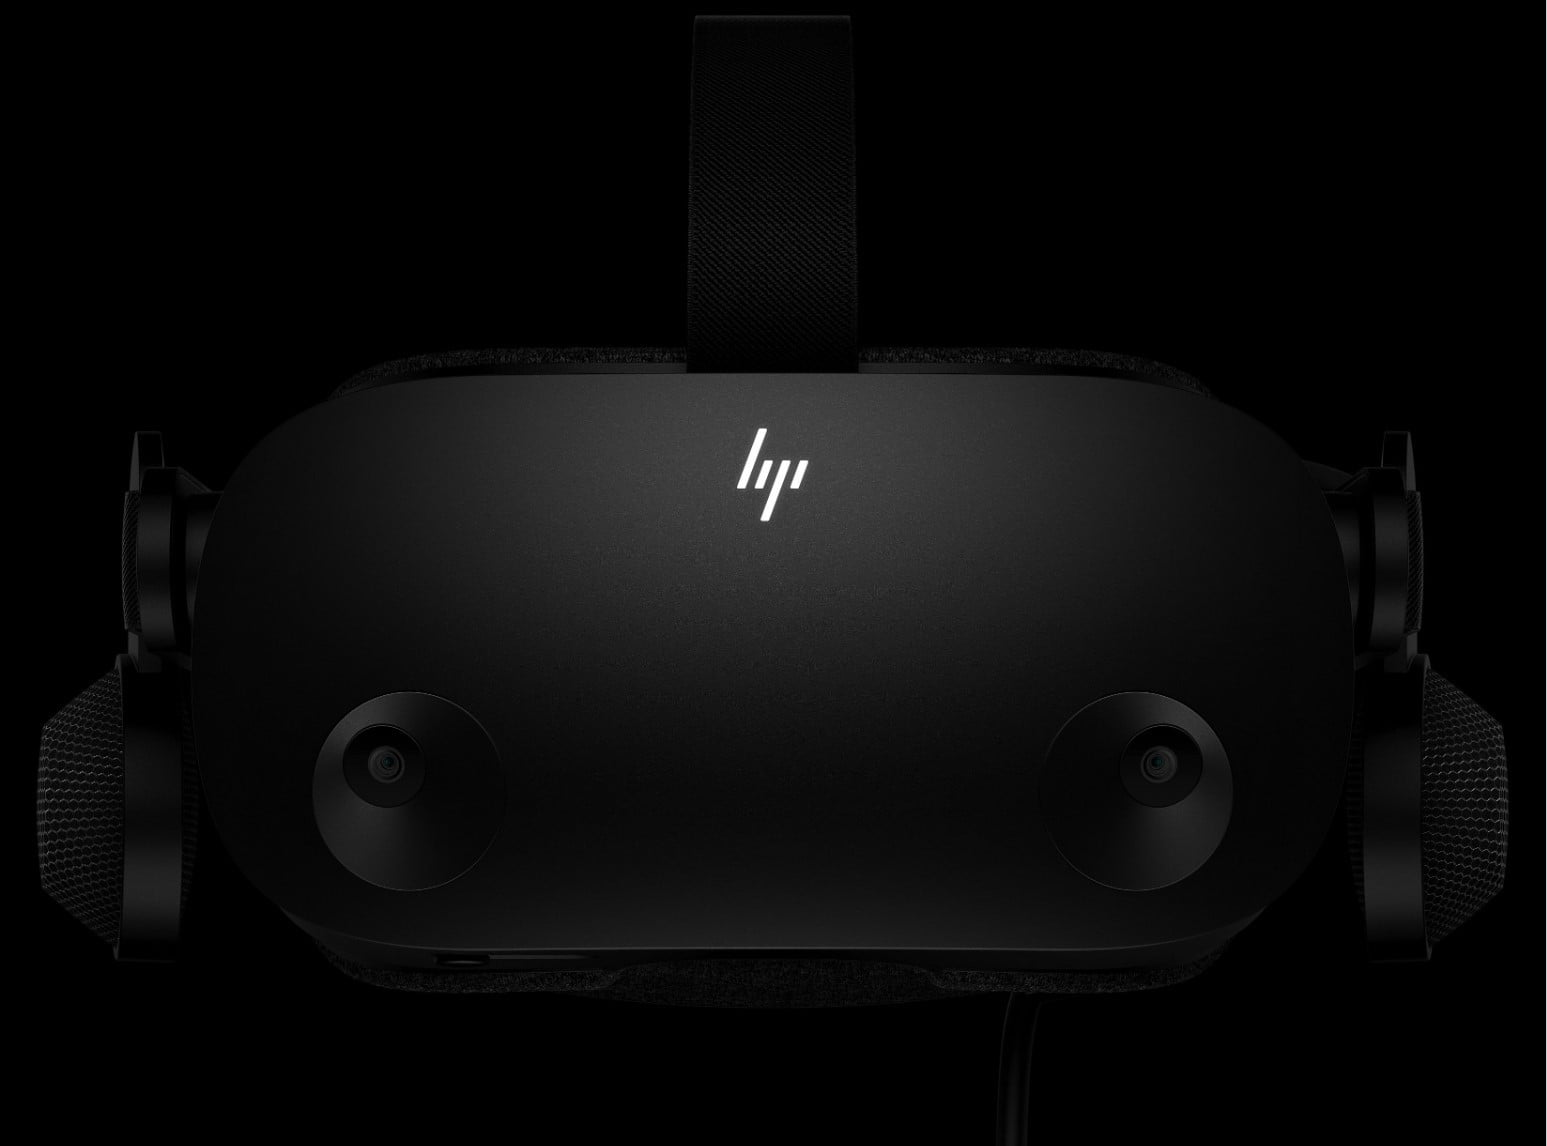 The front view of the HP Reverb G2 virtual reality headset.